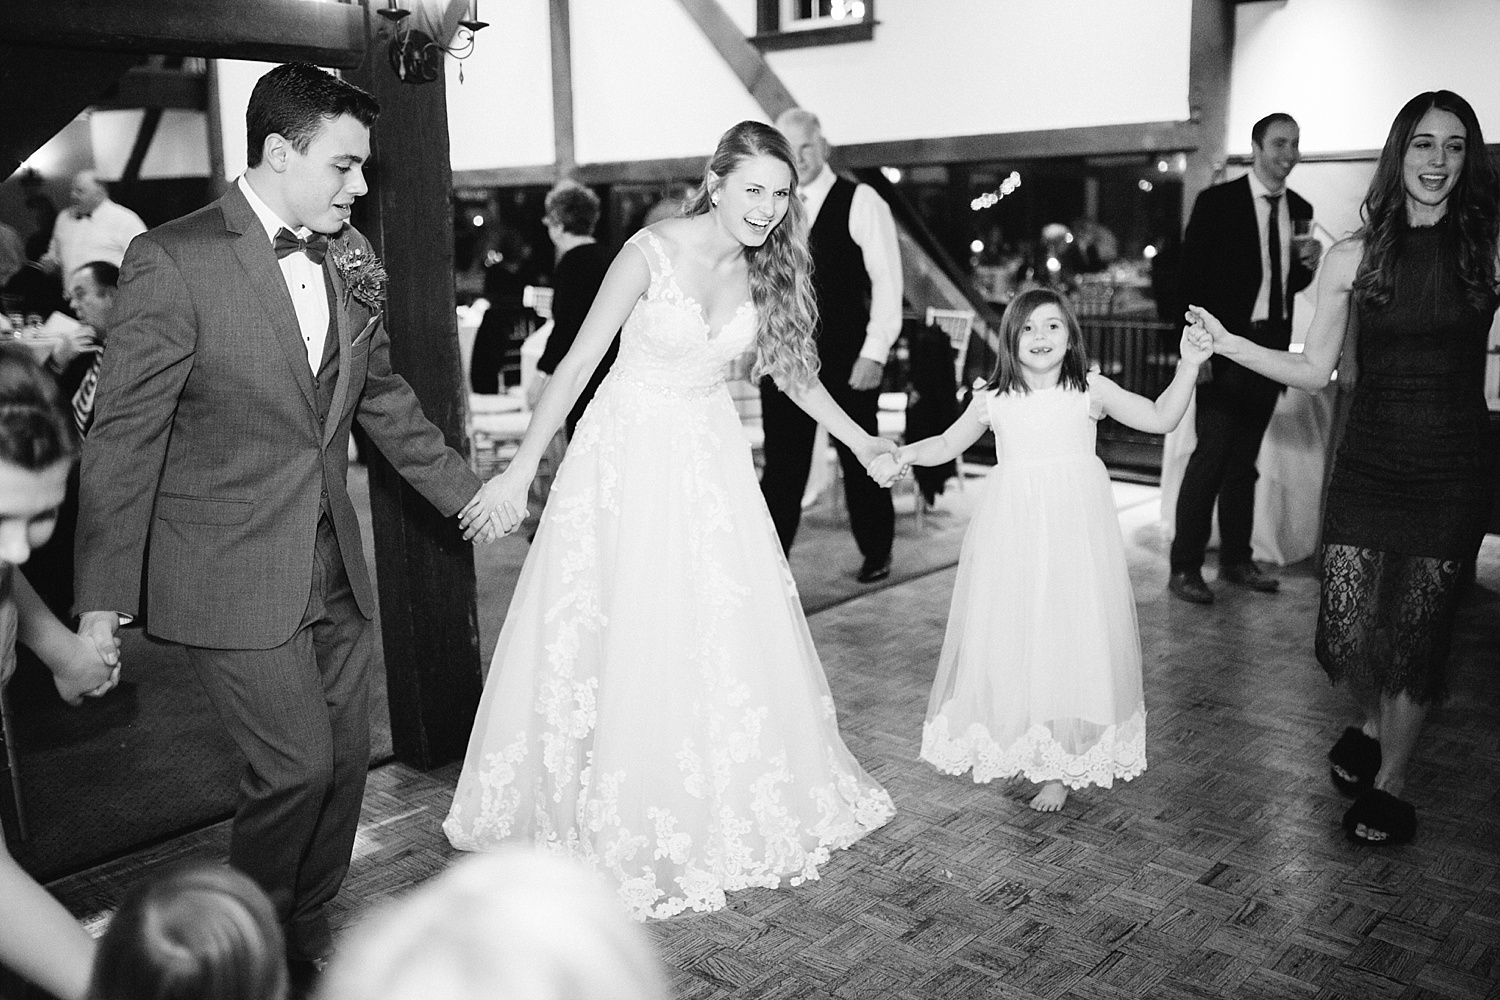 jessdavid_barnonbridge_phoenixville_winter_wedding_image_108.jpg